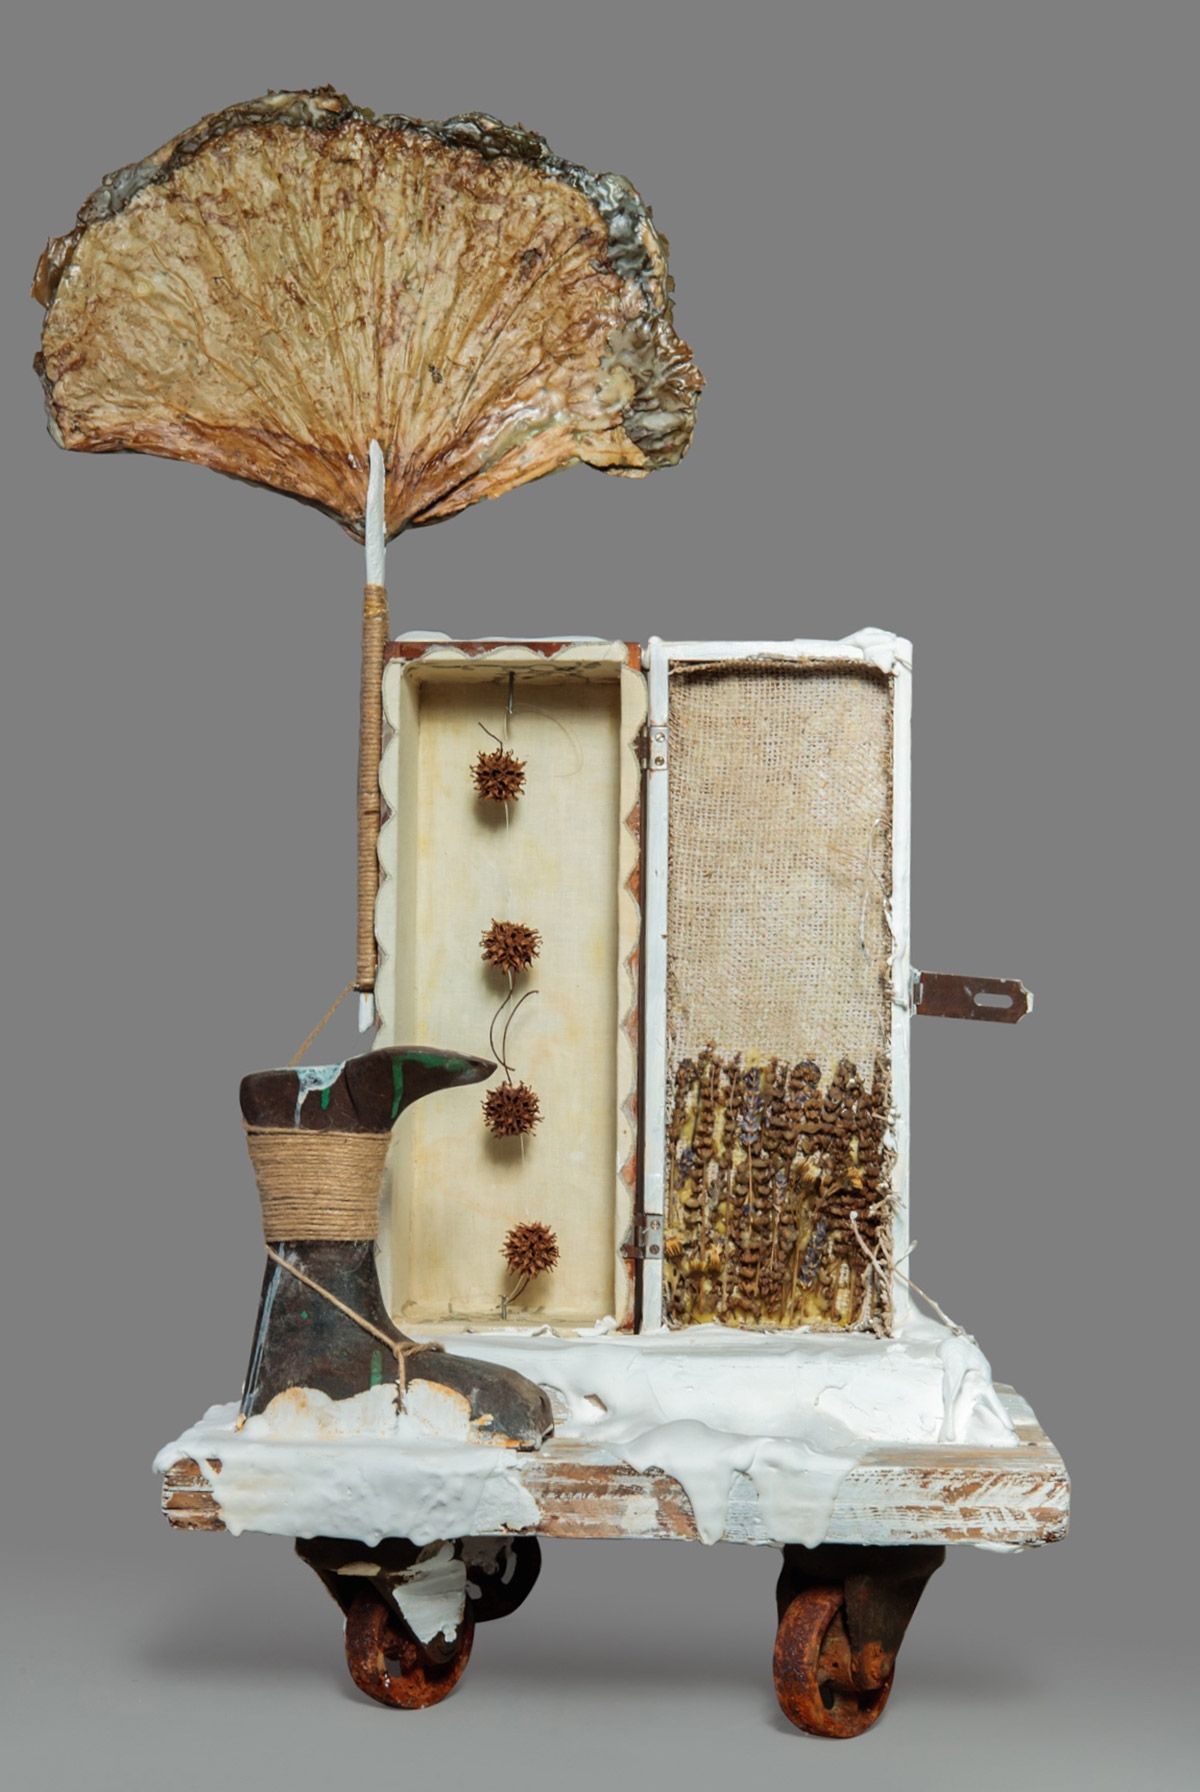 Out of the Earth  (Front) Found objects, burlap, dried plant material, plaster, white paint, encaustic, graphite, twine, glue and nails 36.5 x 18 x 16.5 in/92.7 x 45.7 x 41.9 cm